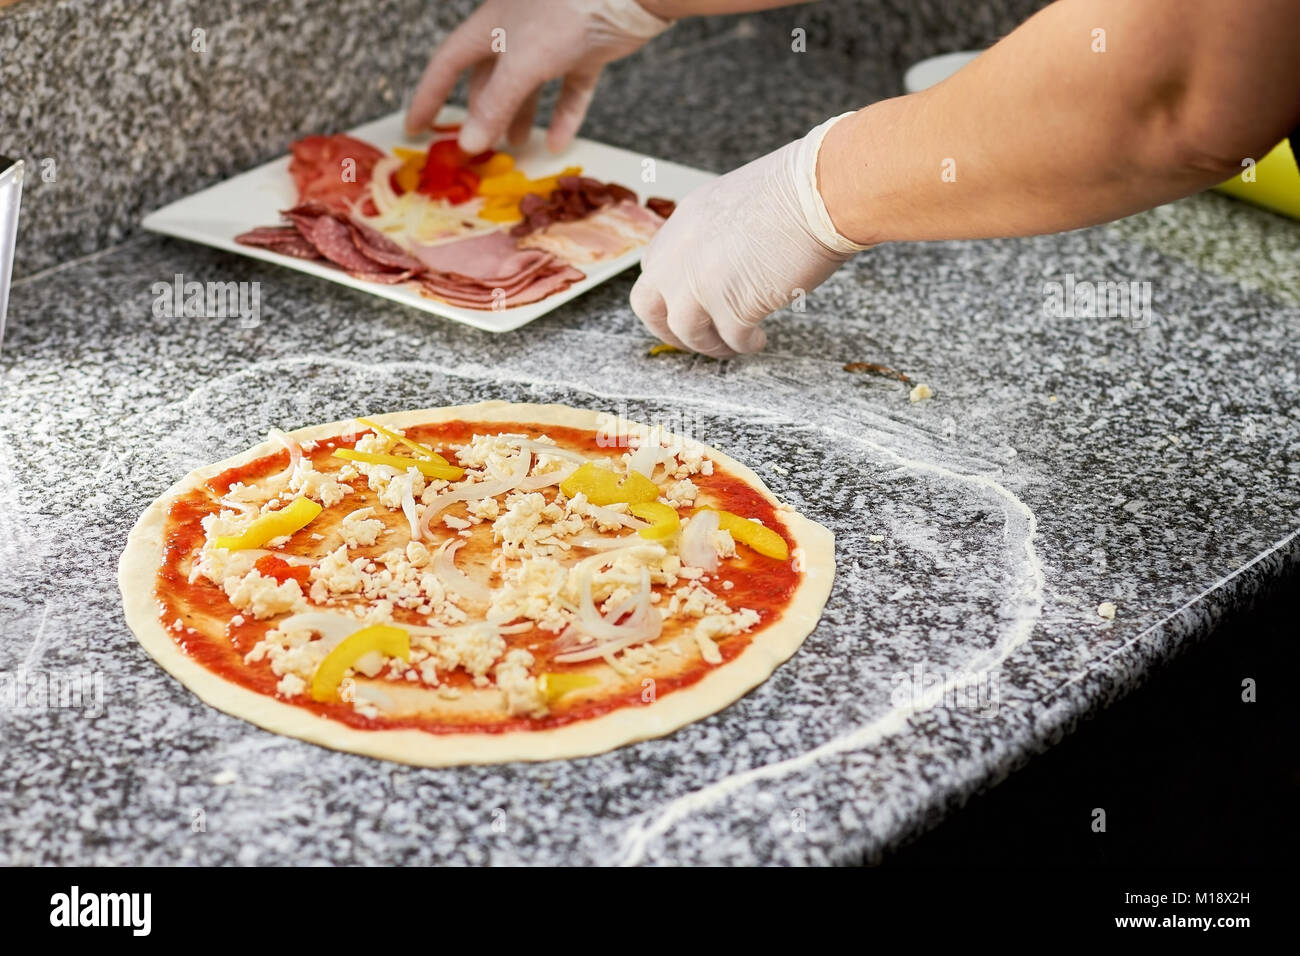 Grabing ingredients of pizza. Stock Photo